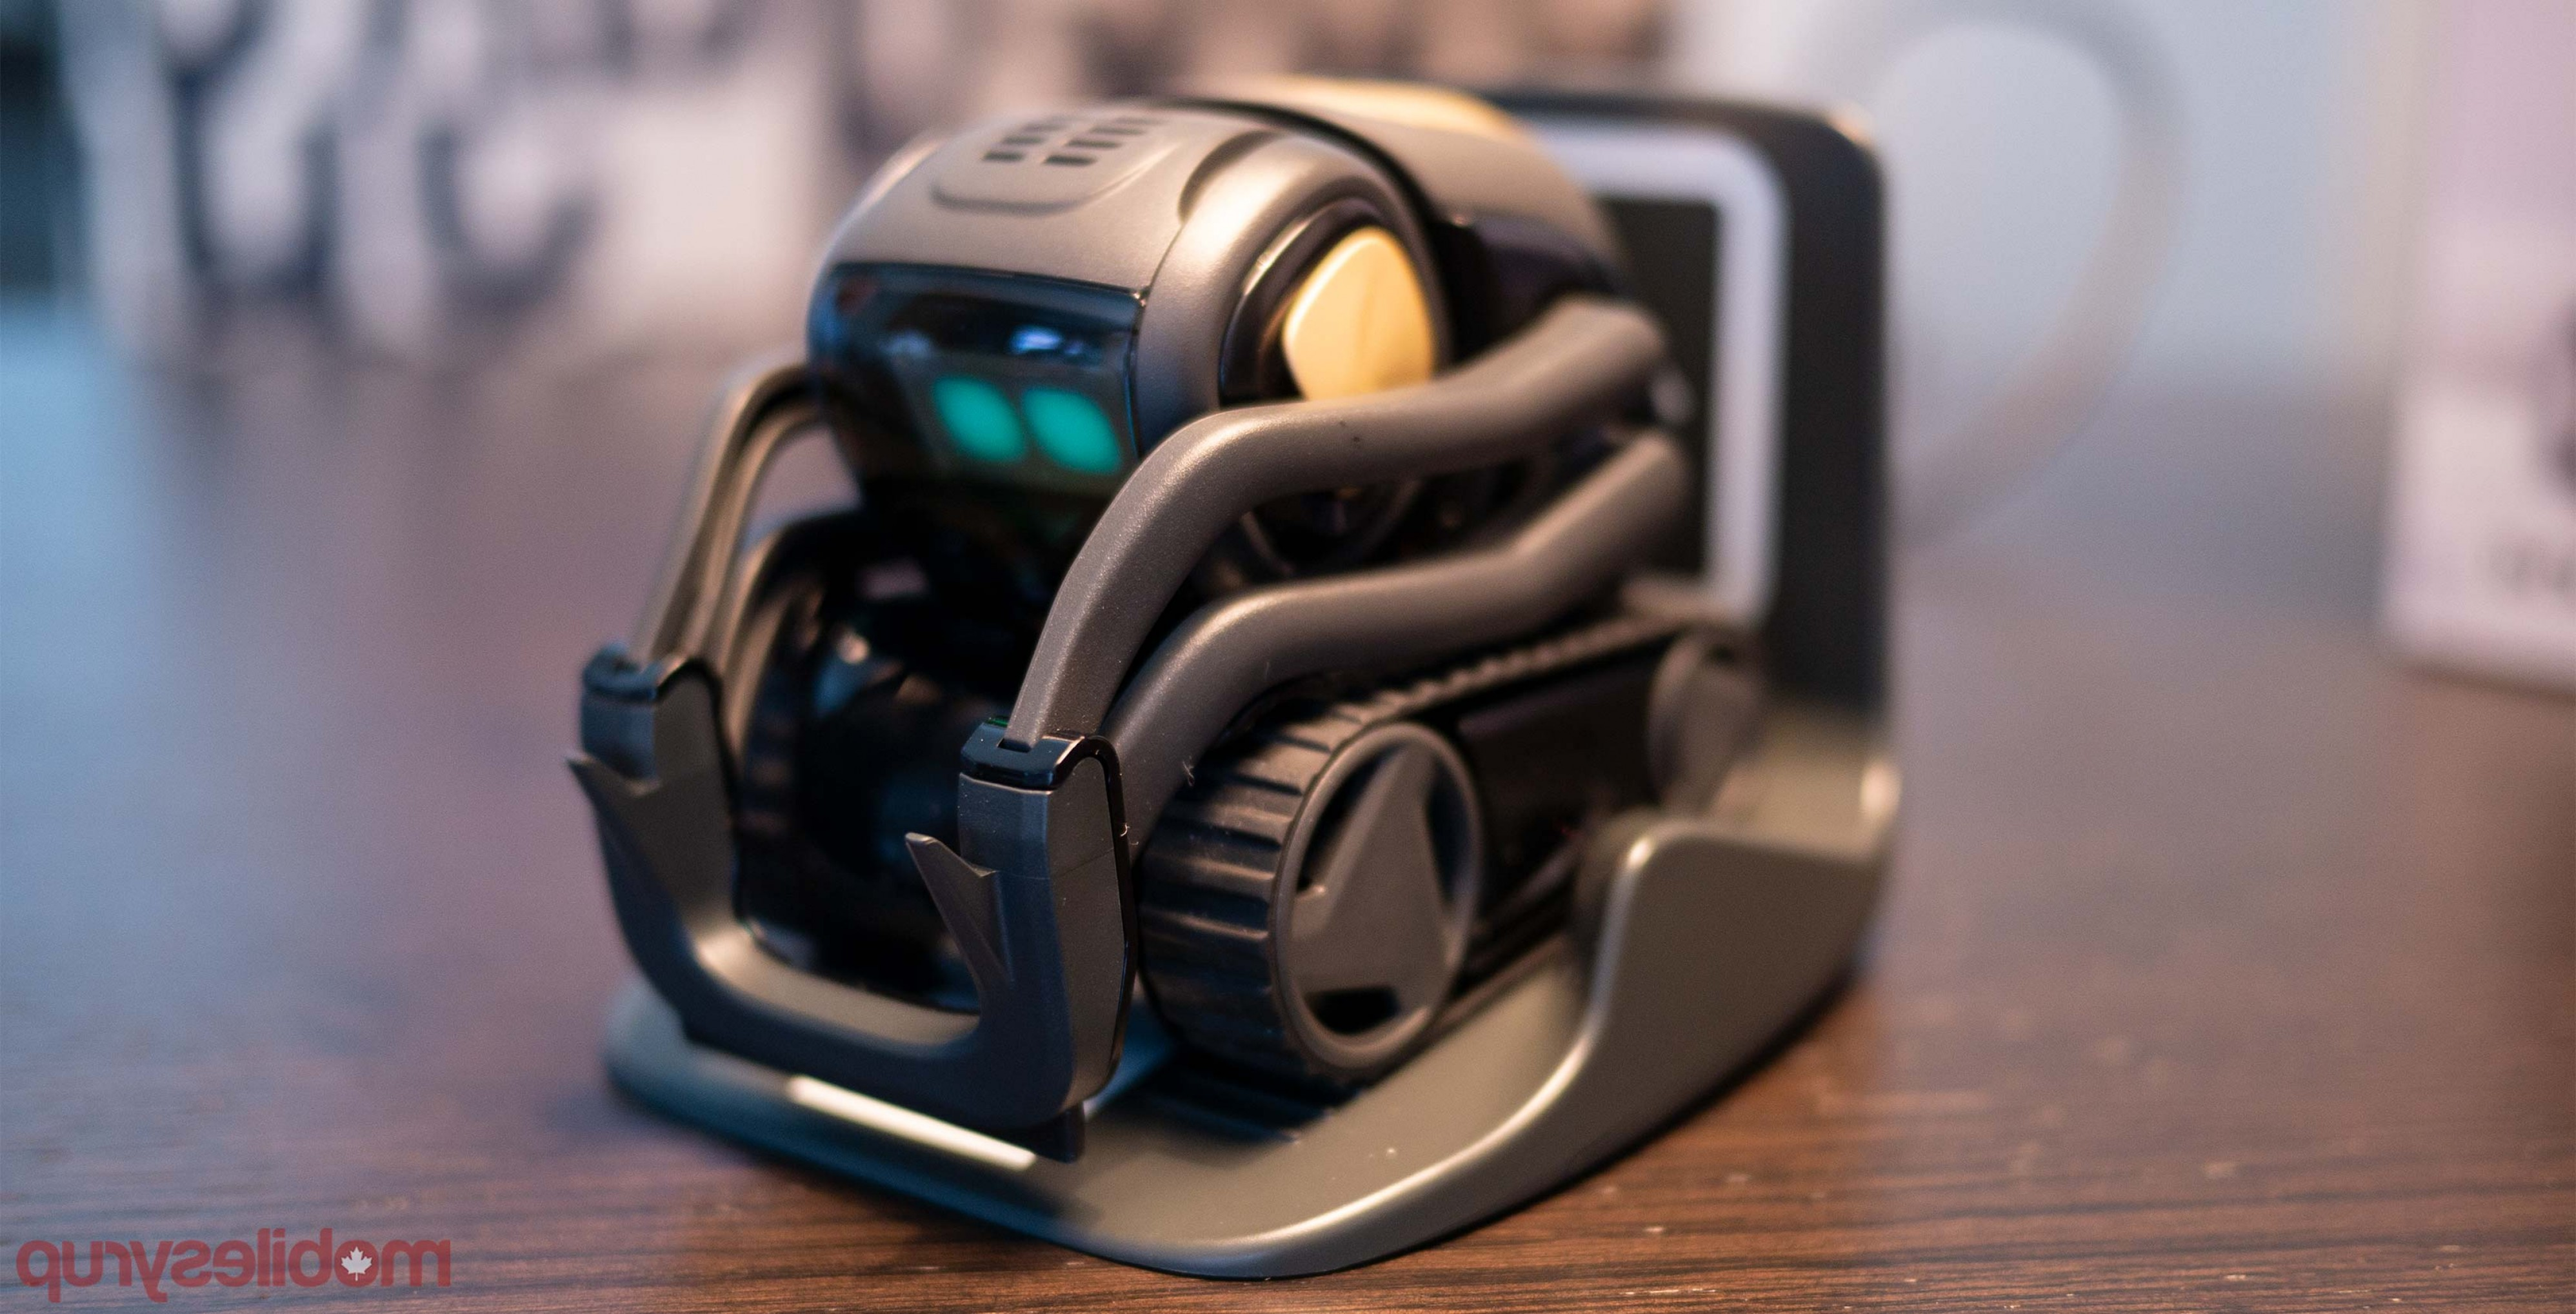 Vector Lite Charger: Anki Vector Hang Out With You